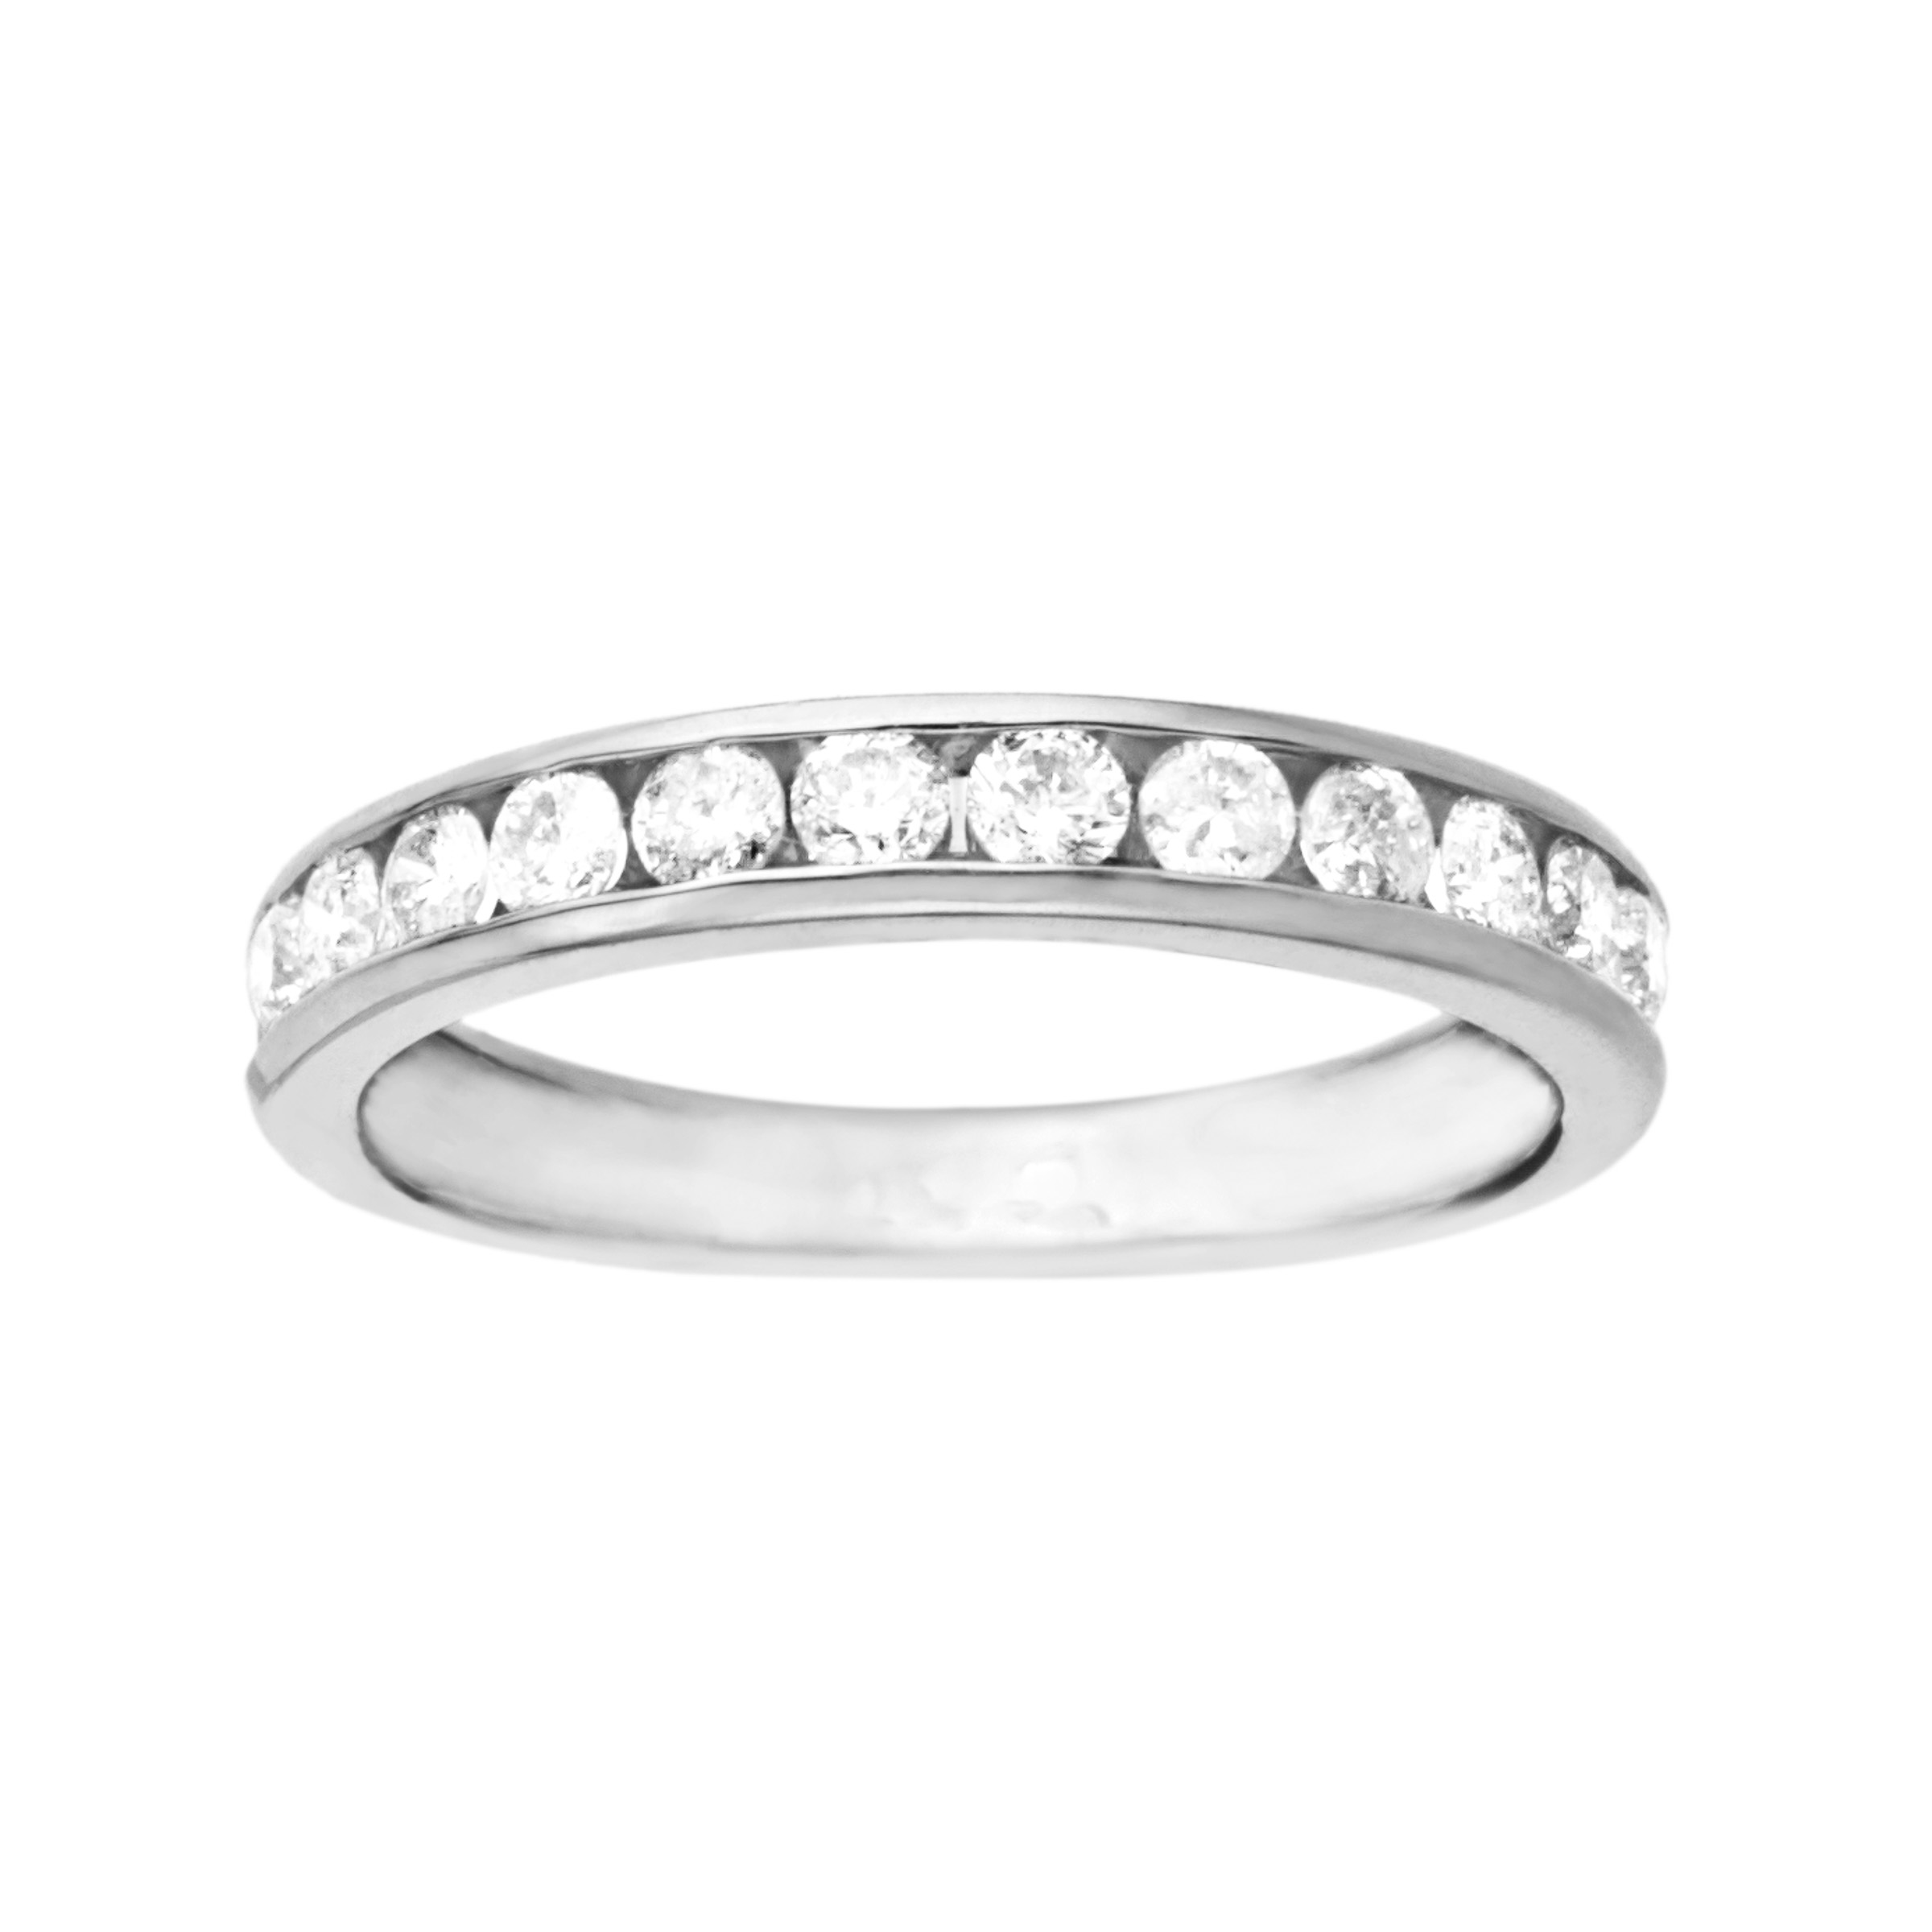 1 2 ct Diamond Wedding Band in 10kt White Gold Ring by Richline Group